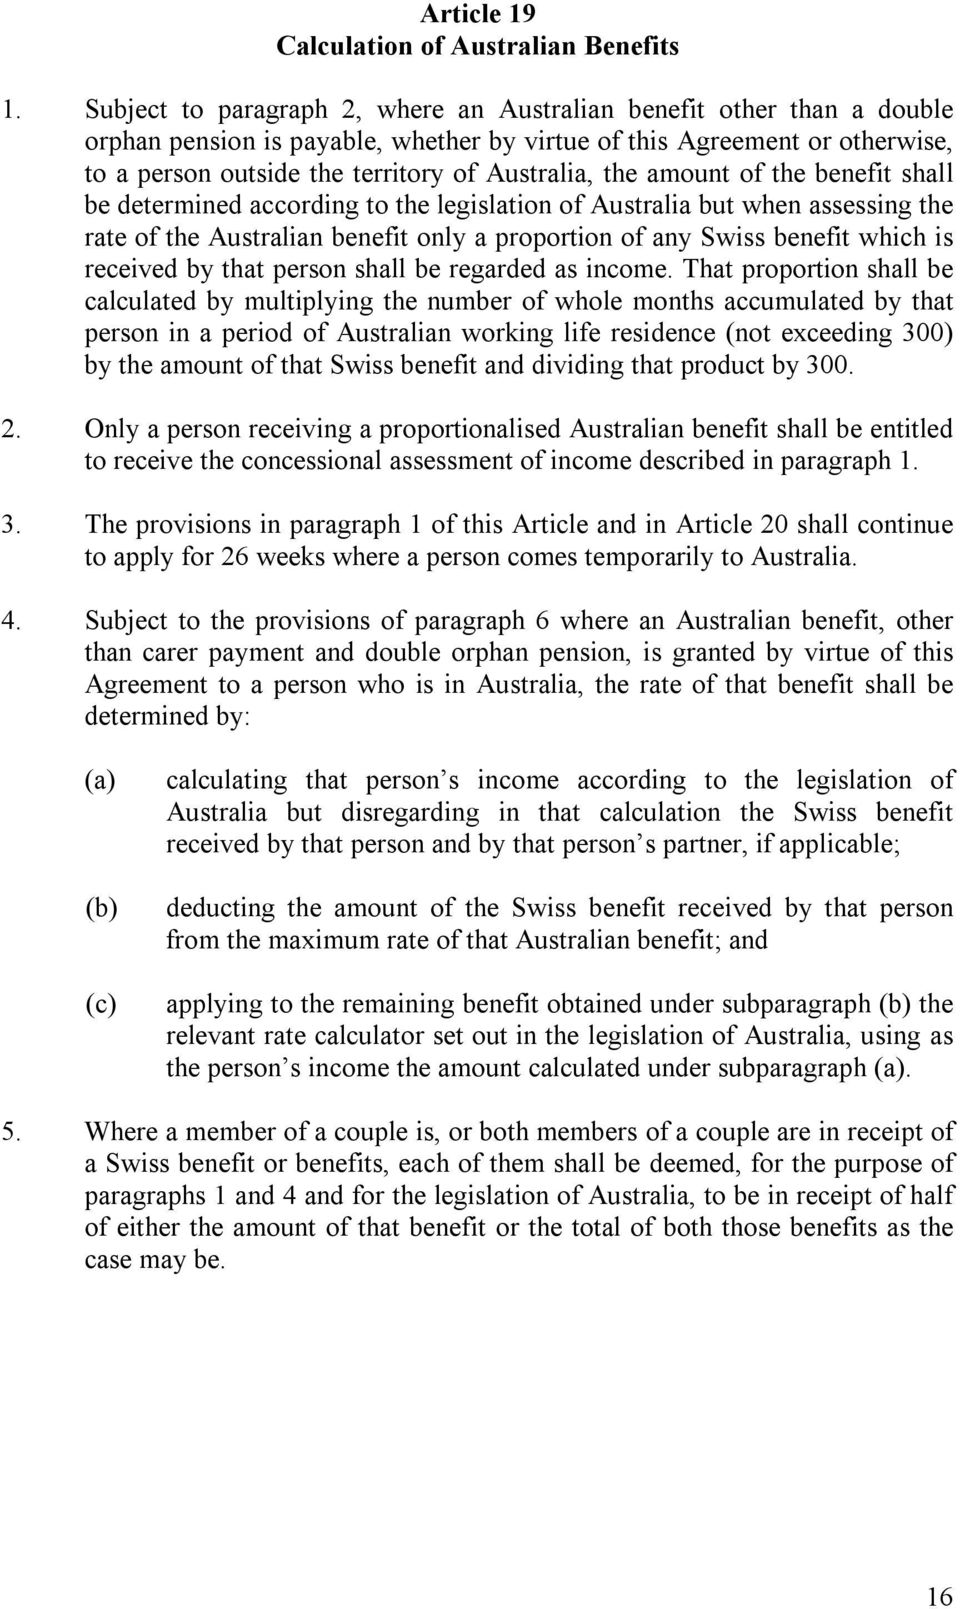 the amount of the benefit shall be determined according to the legislation of Australia but when assessing the rate of the Australian benefit only a proportion of any Swiss benefit which is received